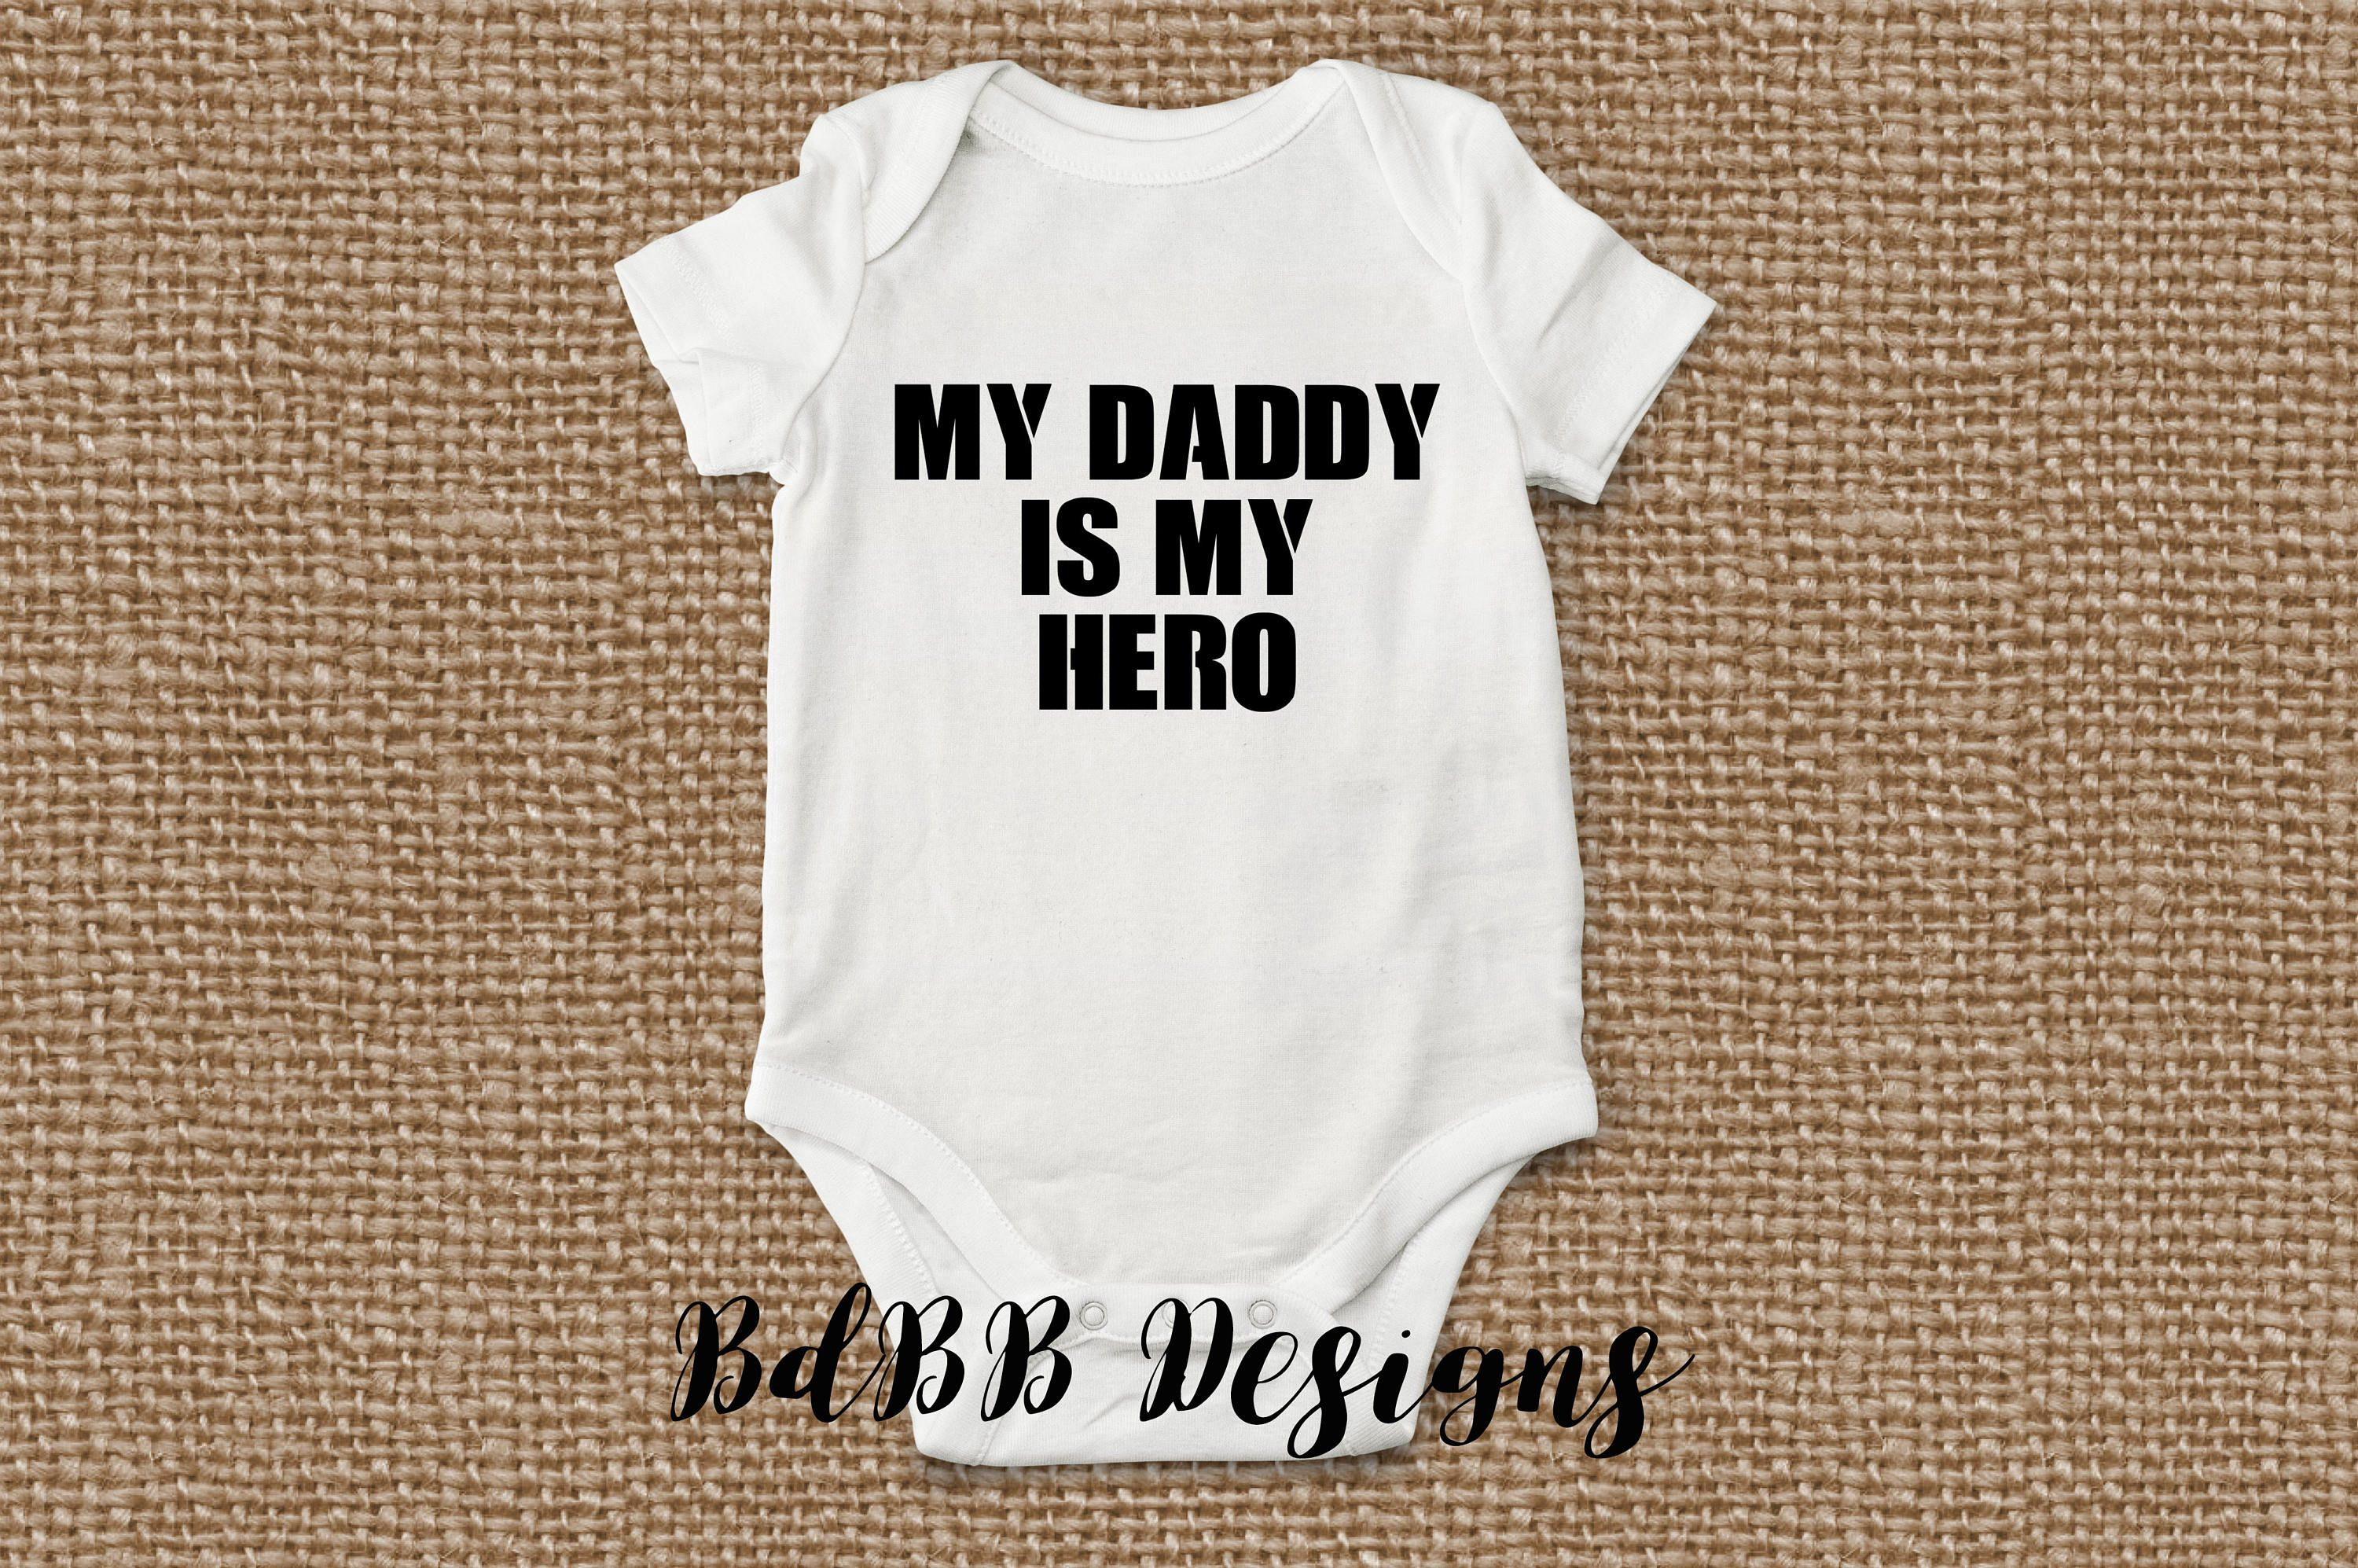 My Daddy is My Hero Onesie / Newborn Take Home Outfit